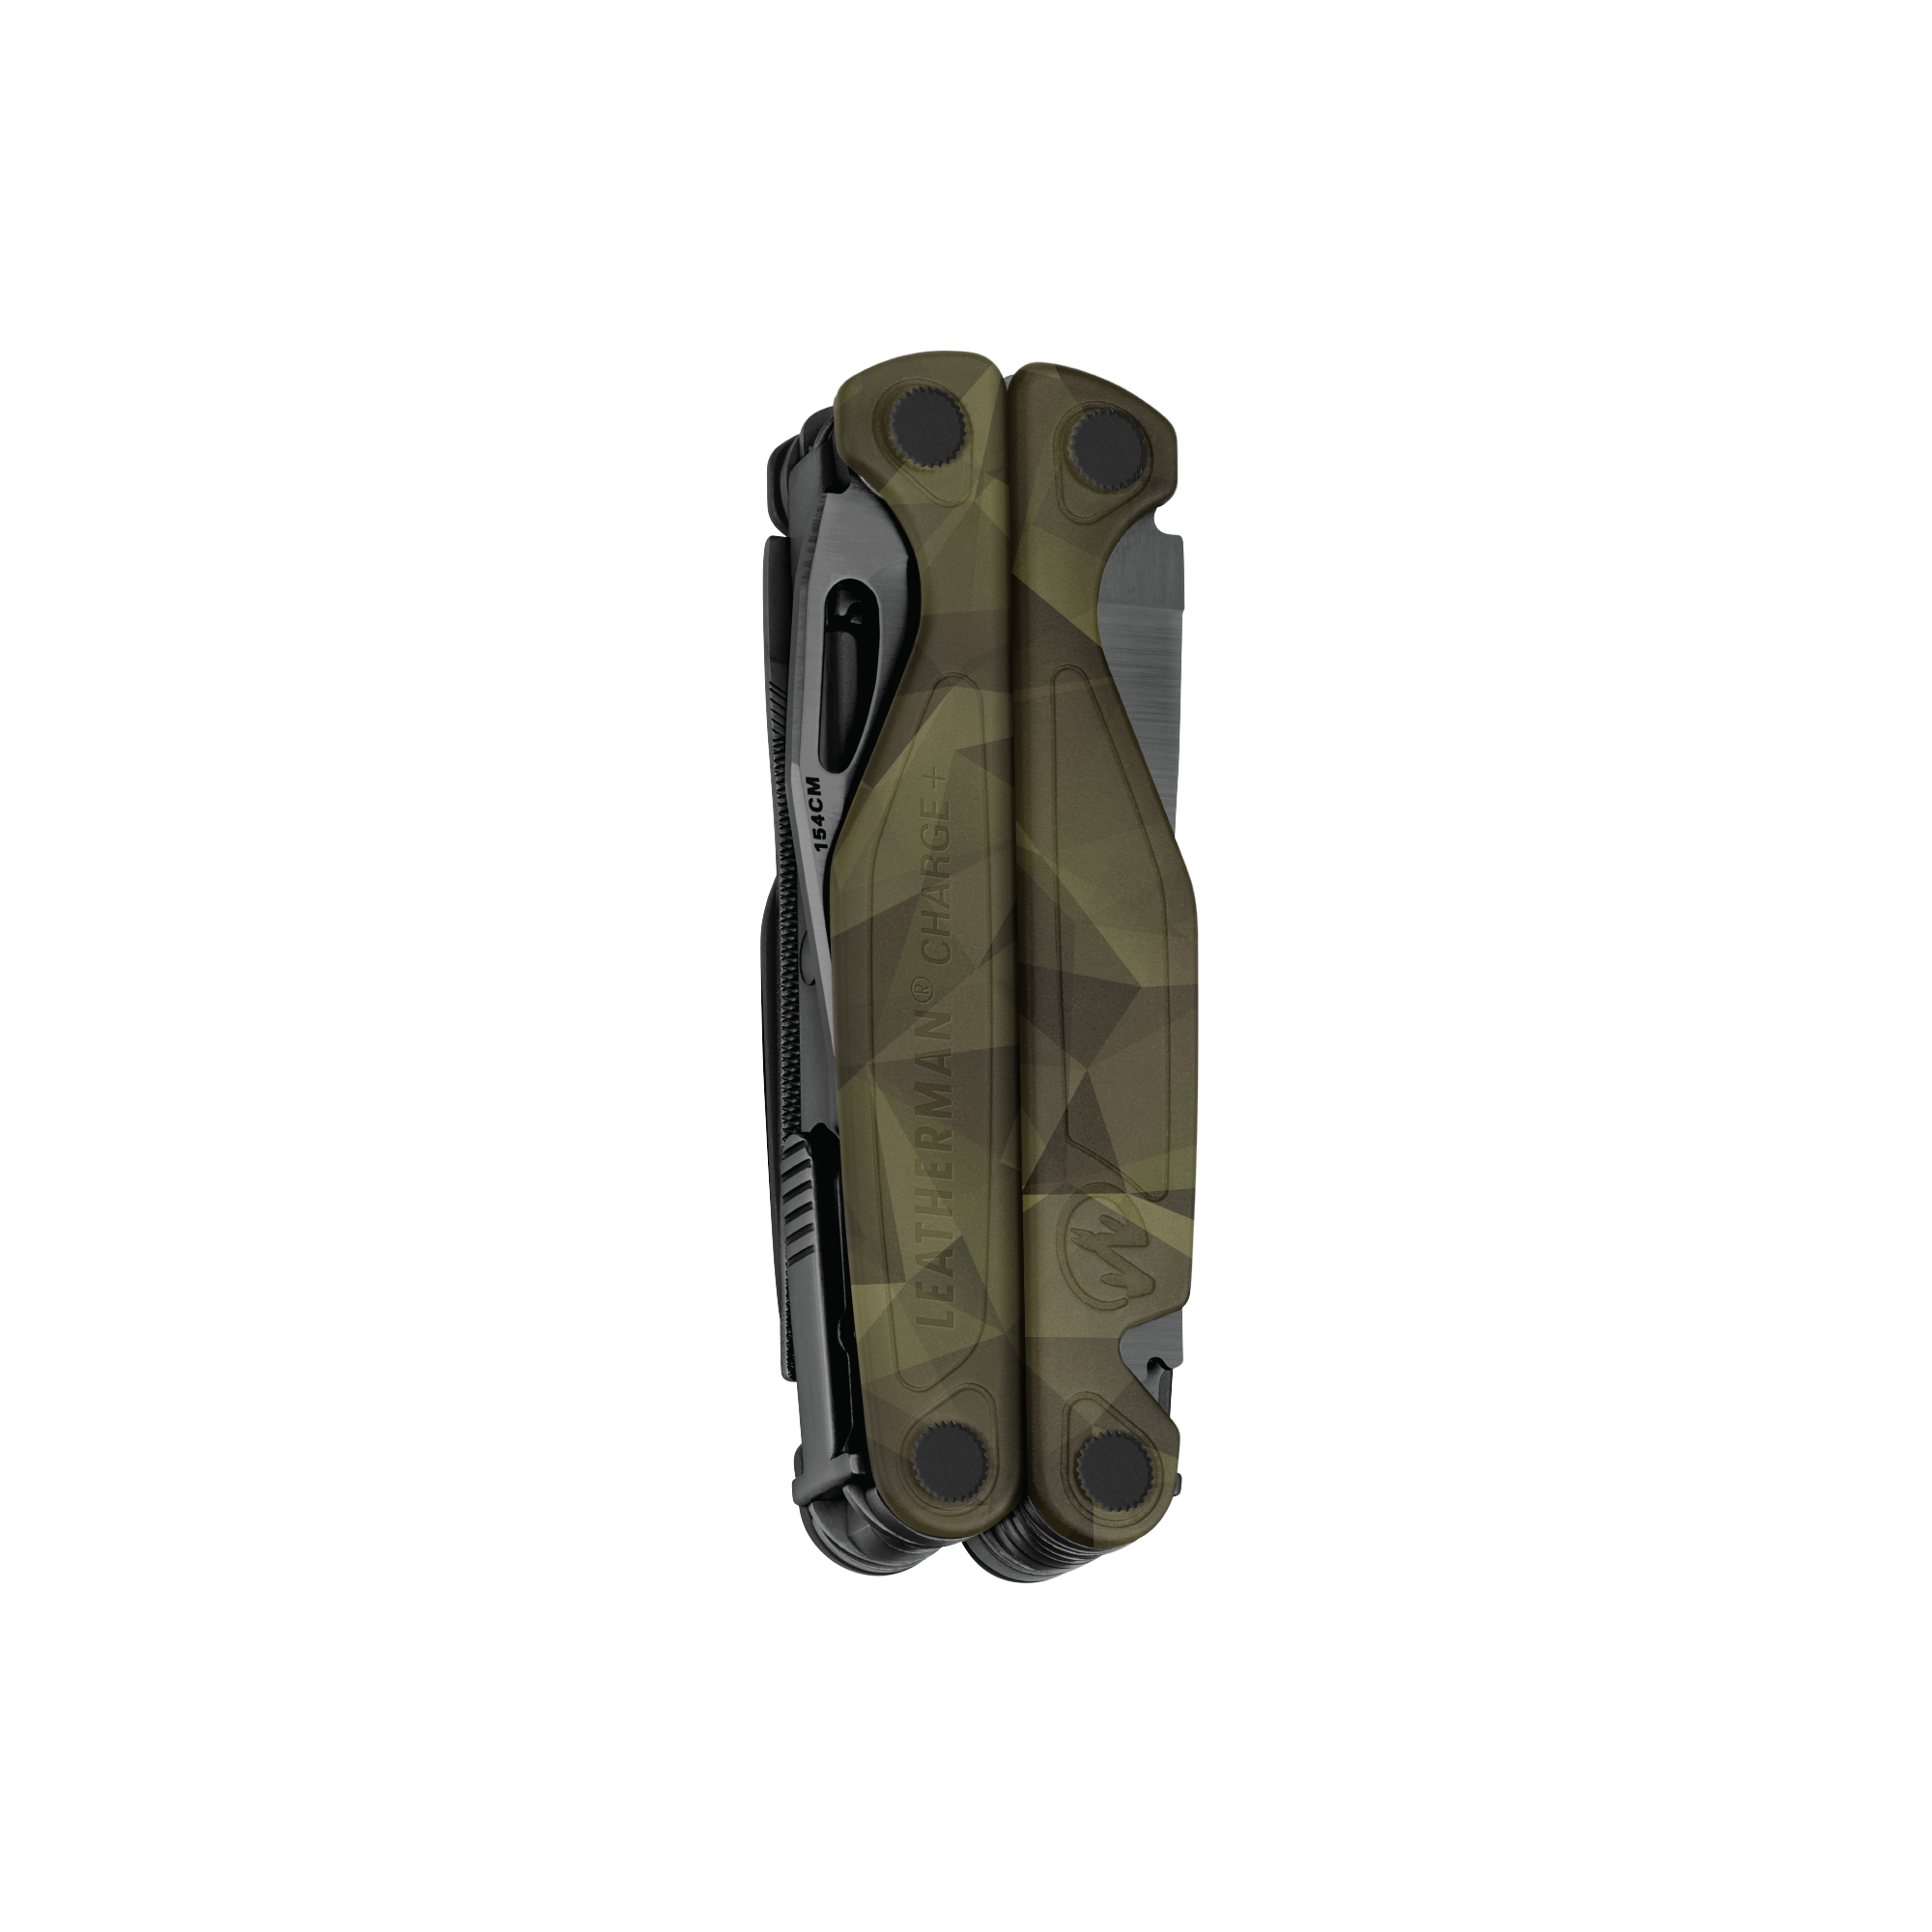 Leatherman Charge multi-tool, closed view, forest camo, 19 tools